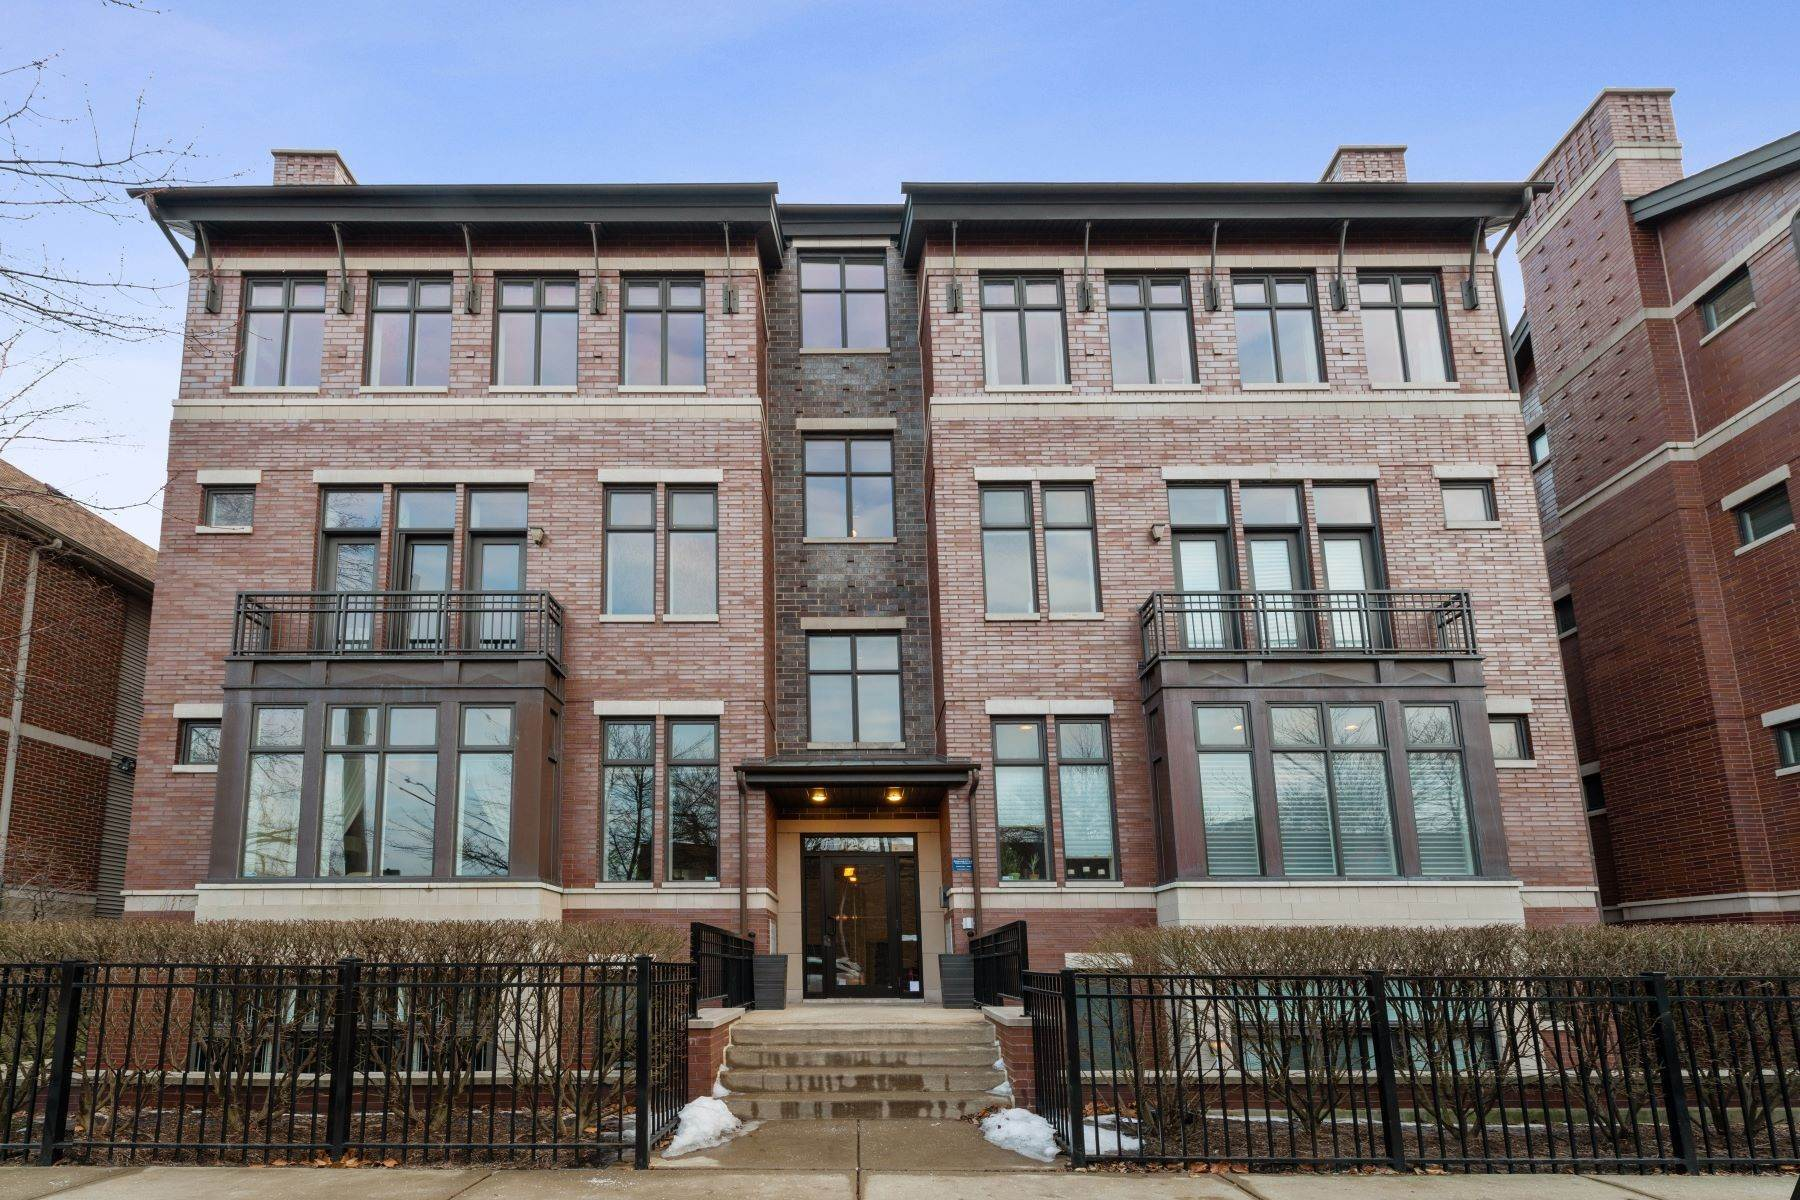 Condominiums for Sale at Extra-Wide Three Bedroom Penthouse Condo 1249 W Melrose Street, Unit 3E Chicago, Illinois 60657 United States